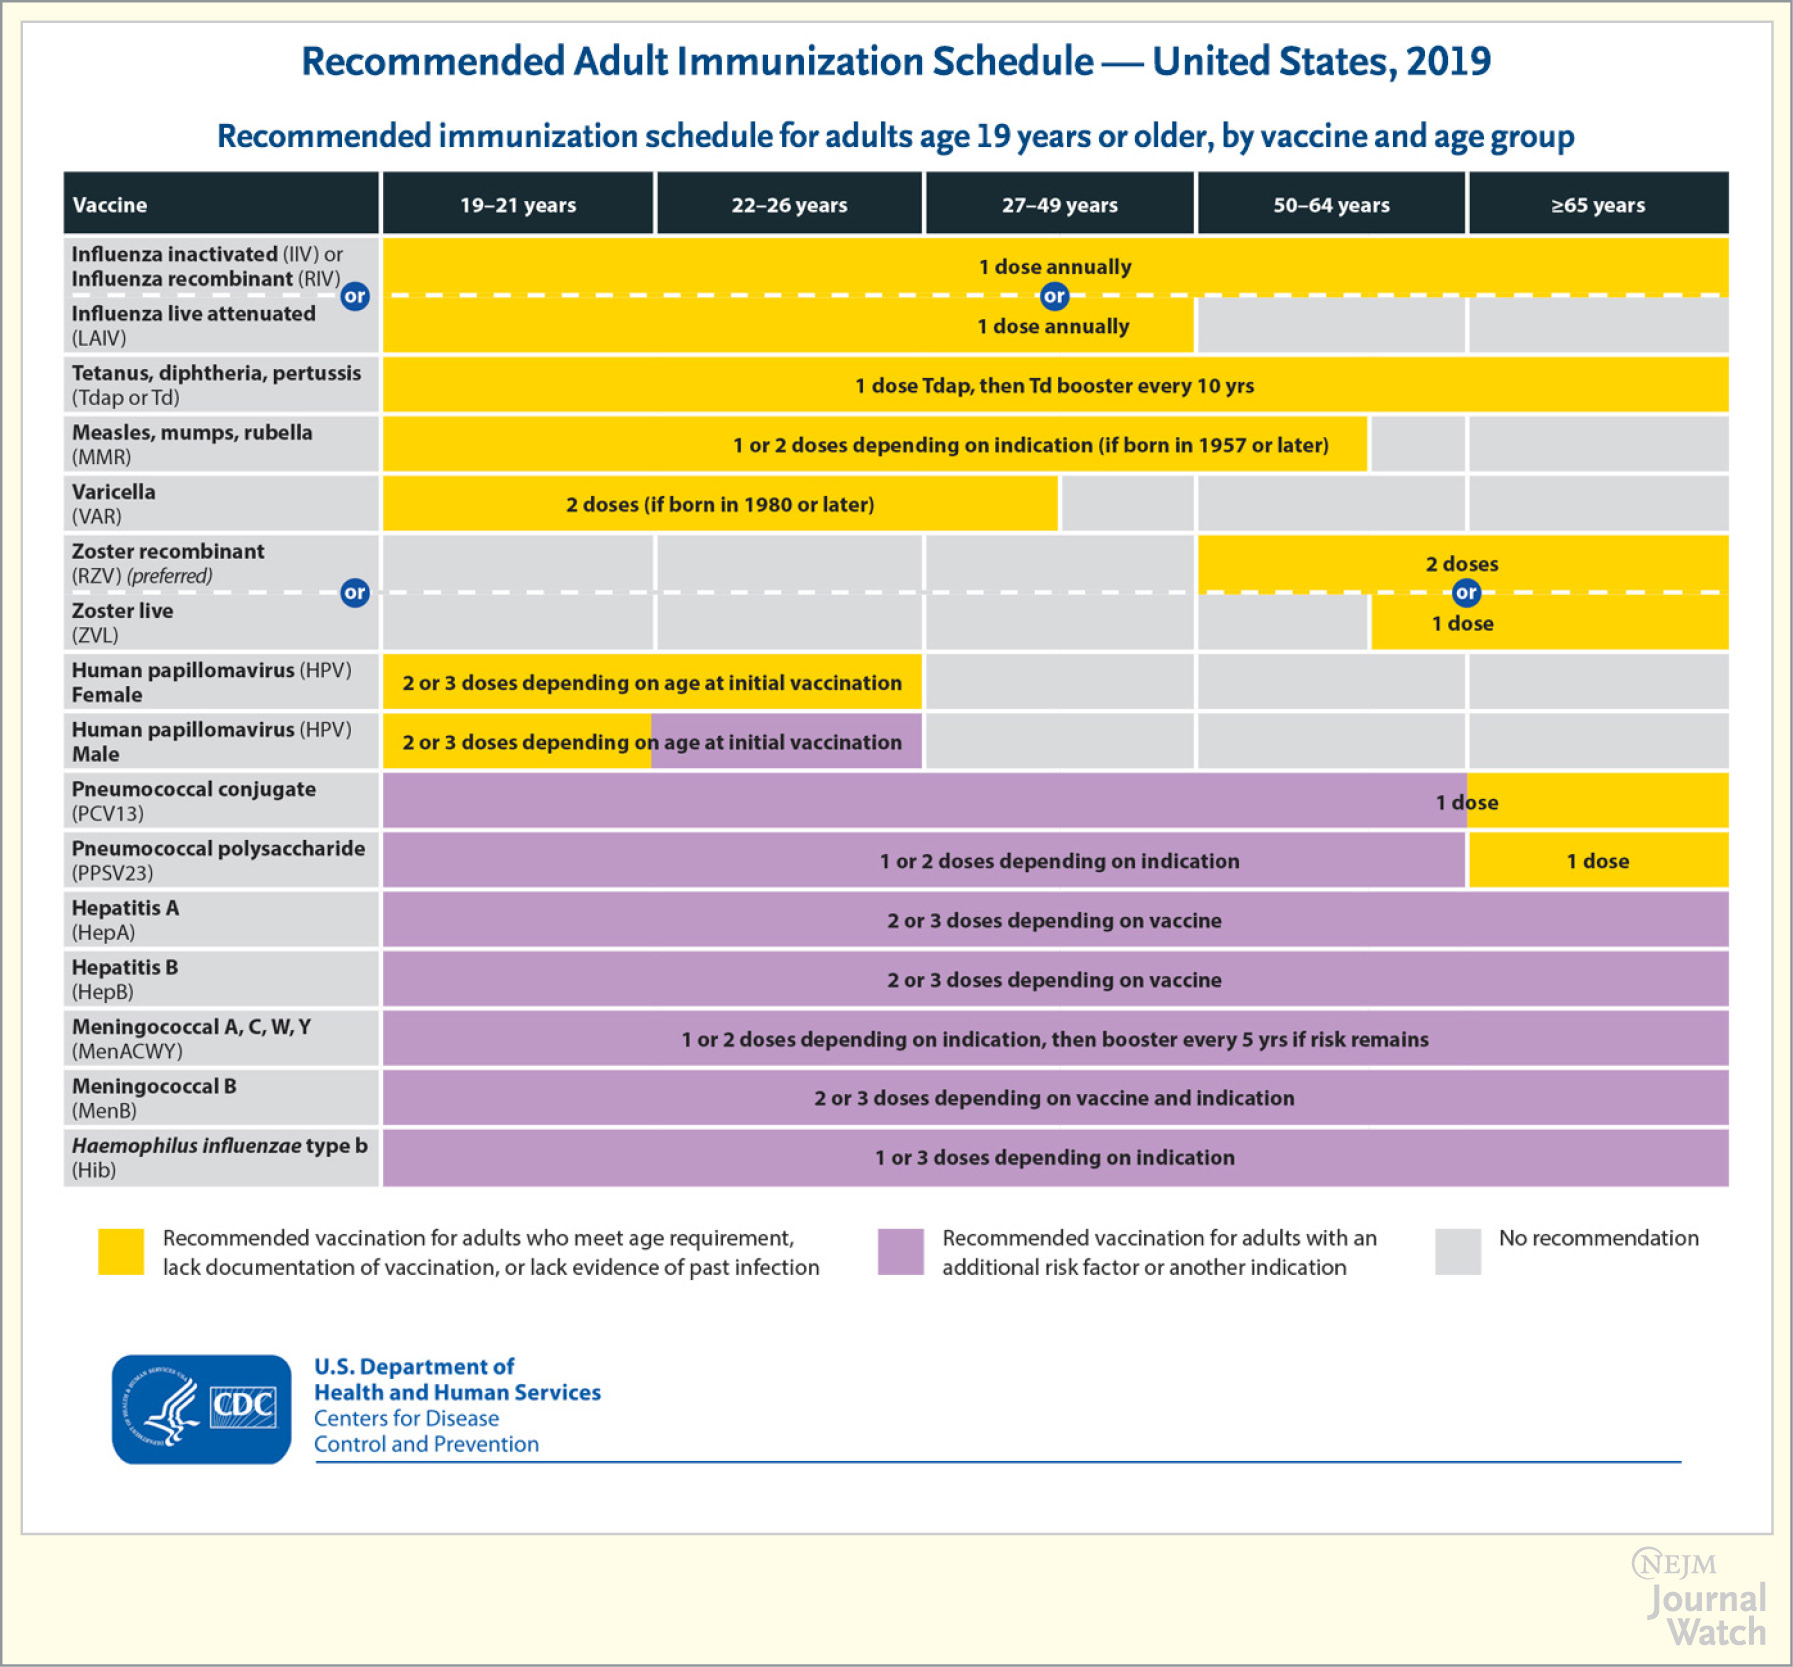 Recommended adult immunization schedule